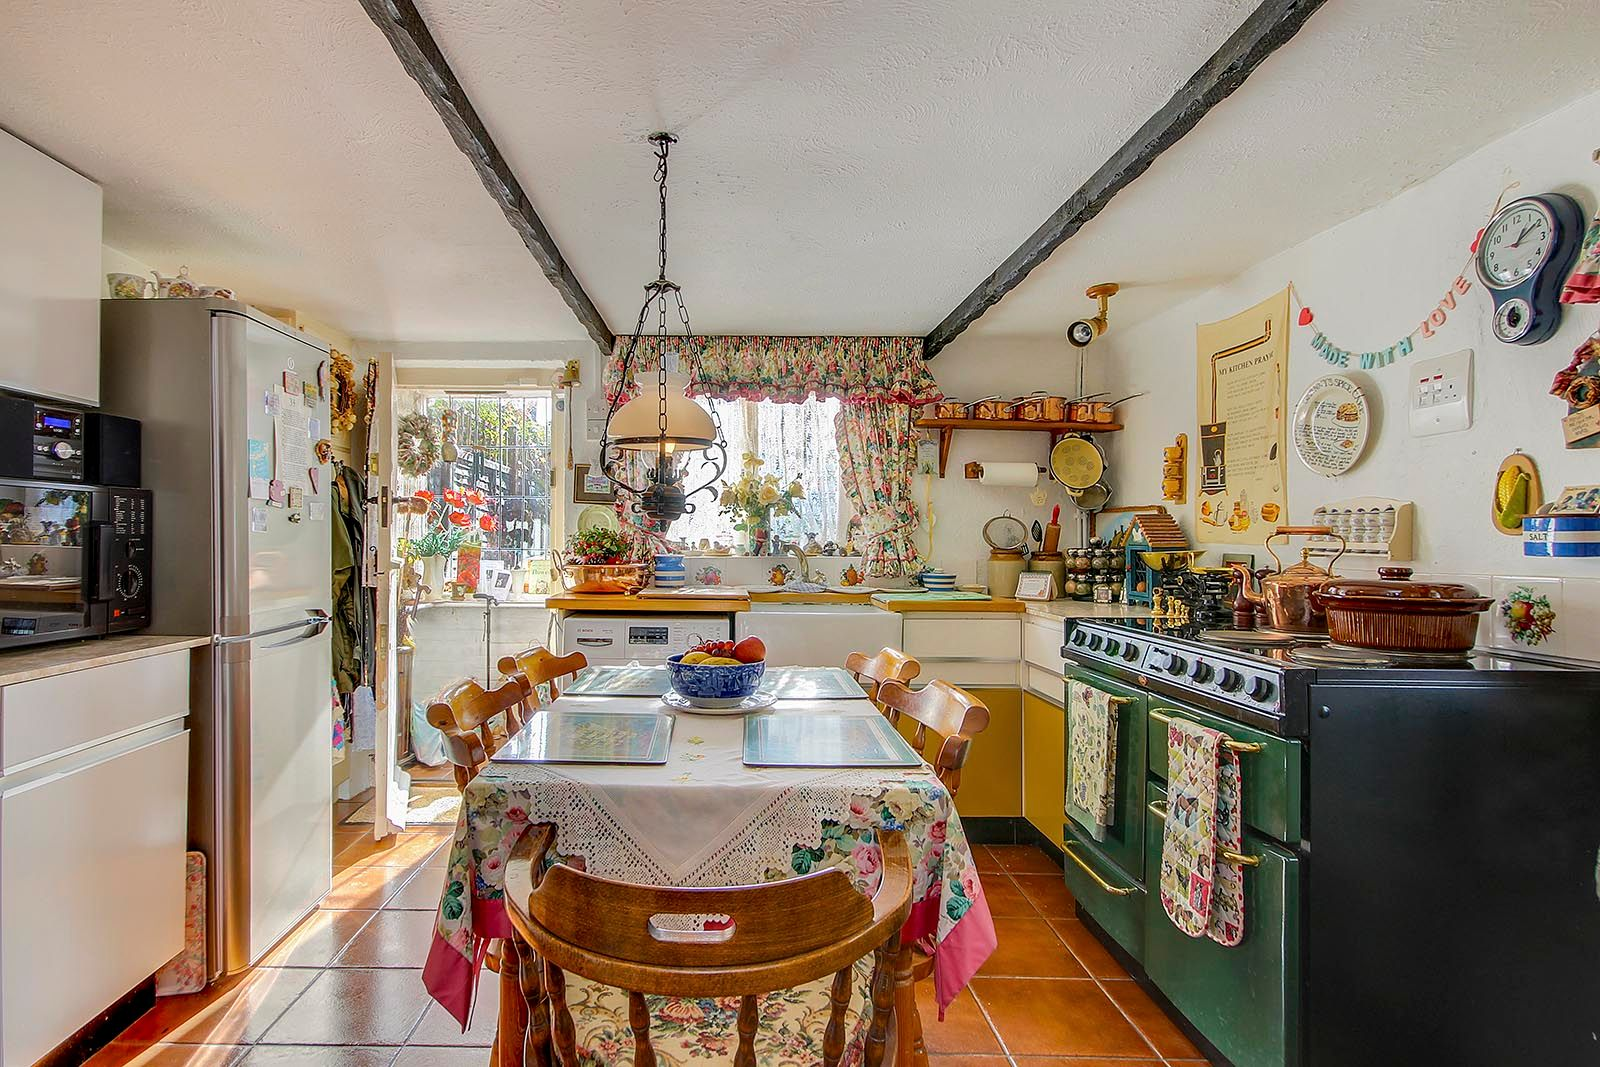 2 bed House for sale in Arundel - Kitchen/Dining Room (Property Image 12)